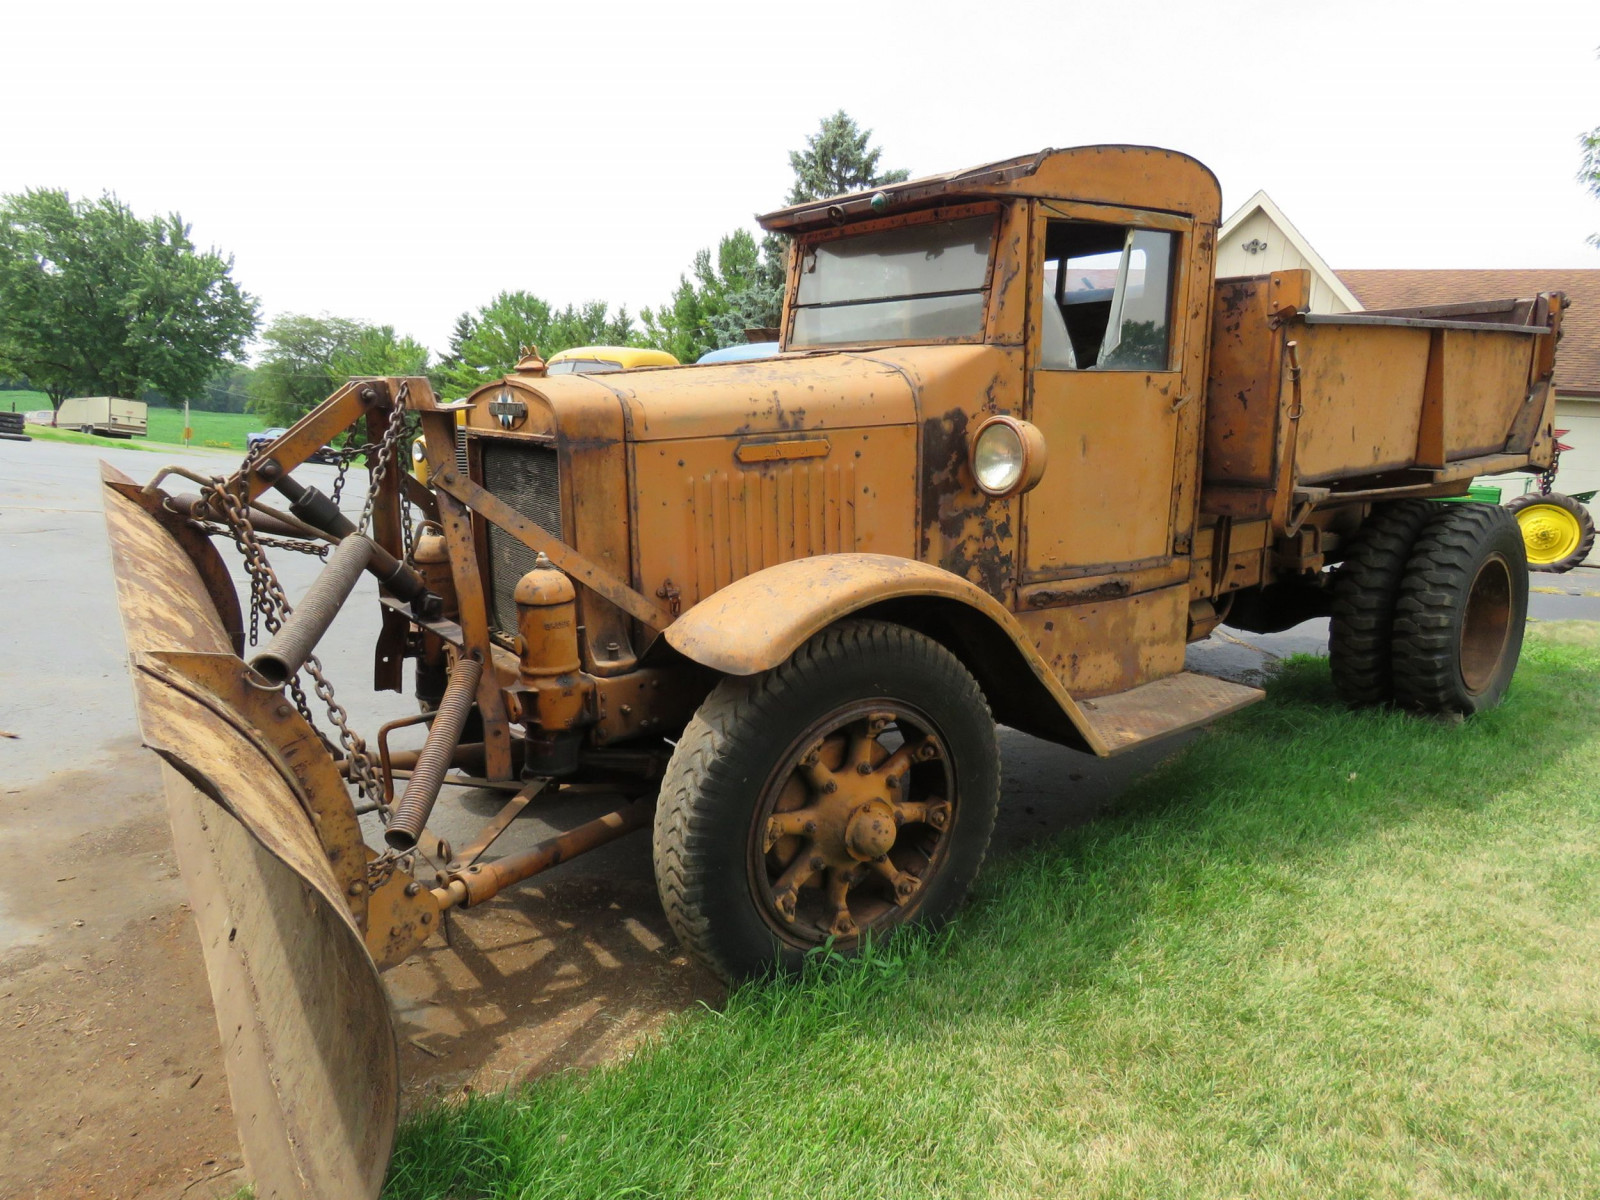 1929 International Truck - Image 3